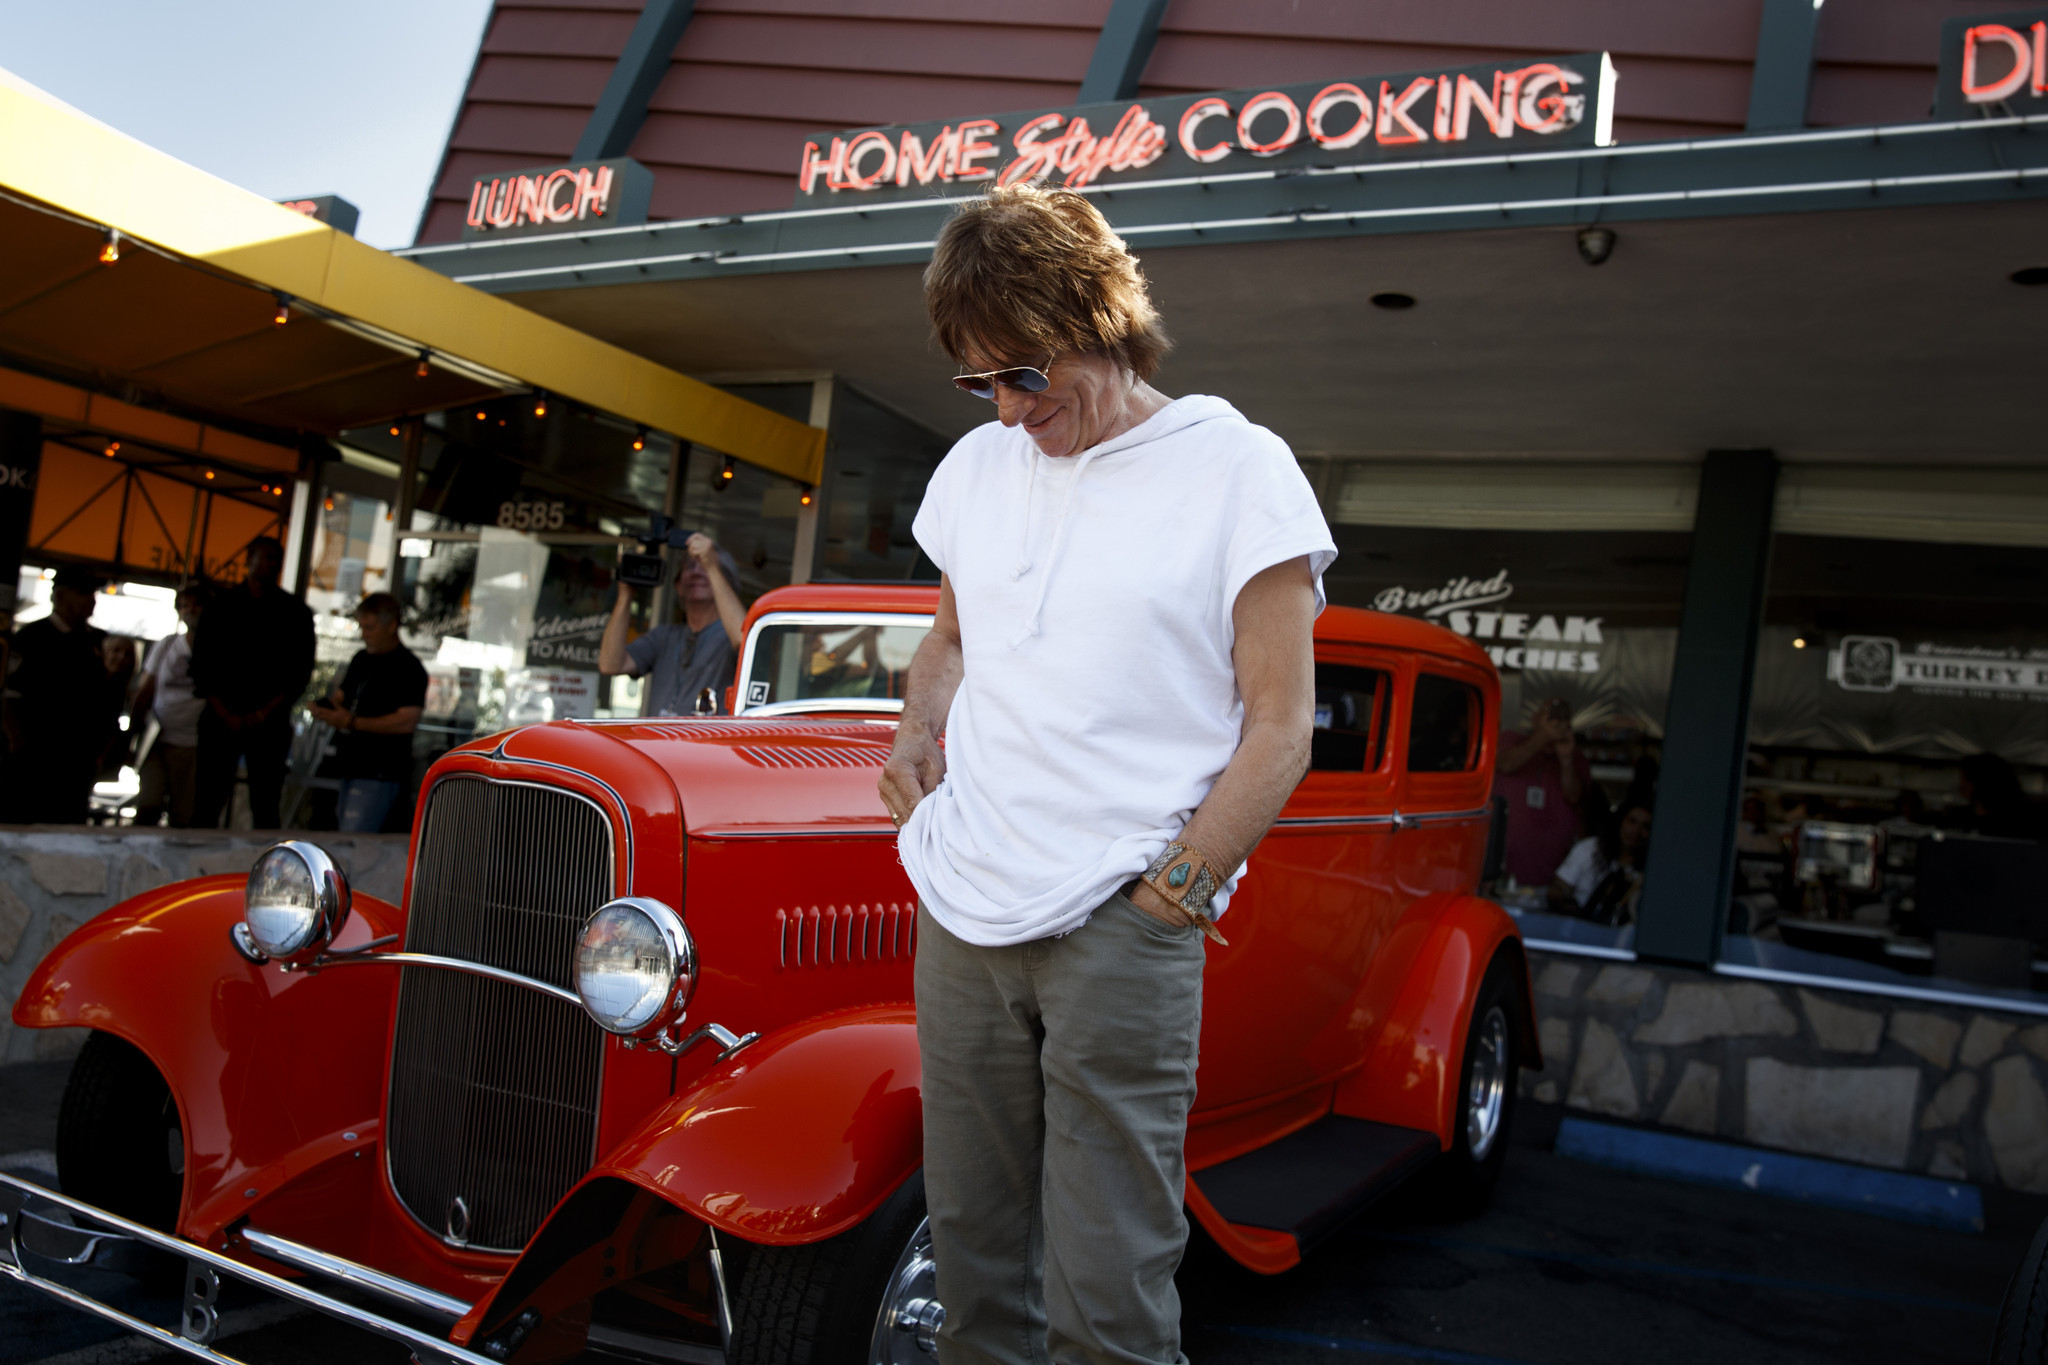 Rock guitarist Jeff Beck drove a restored 1932 Ford to Mel's Drive-In in West Hollywood on Monday to take part in a book release event for the publication of his book